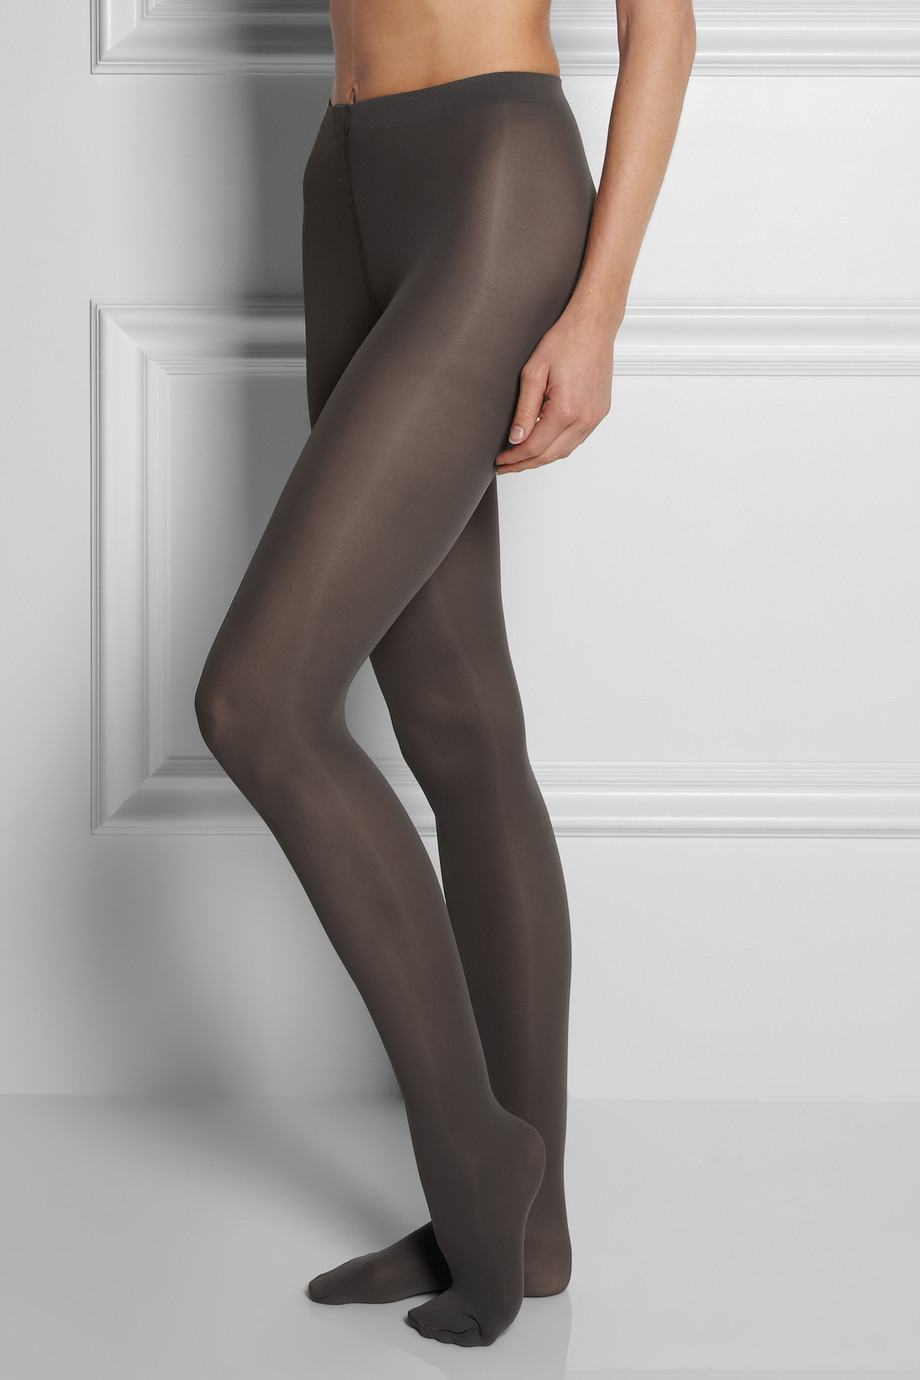 Falke Pure Matt 50 Denier Tights - Dark gray Cheap Sale 2018 Under 50 Dollars High Quality Cheap Online 9XiZuvgV0a